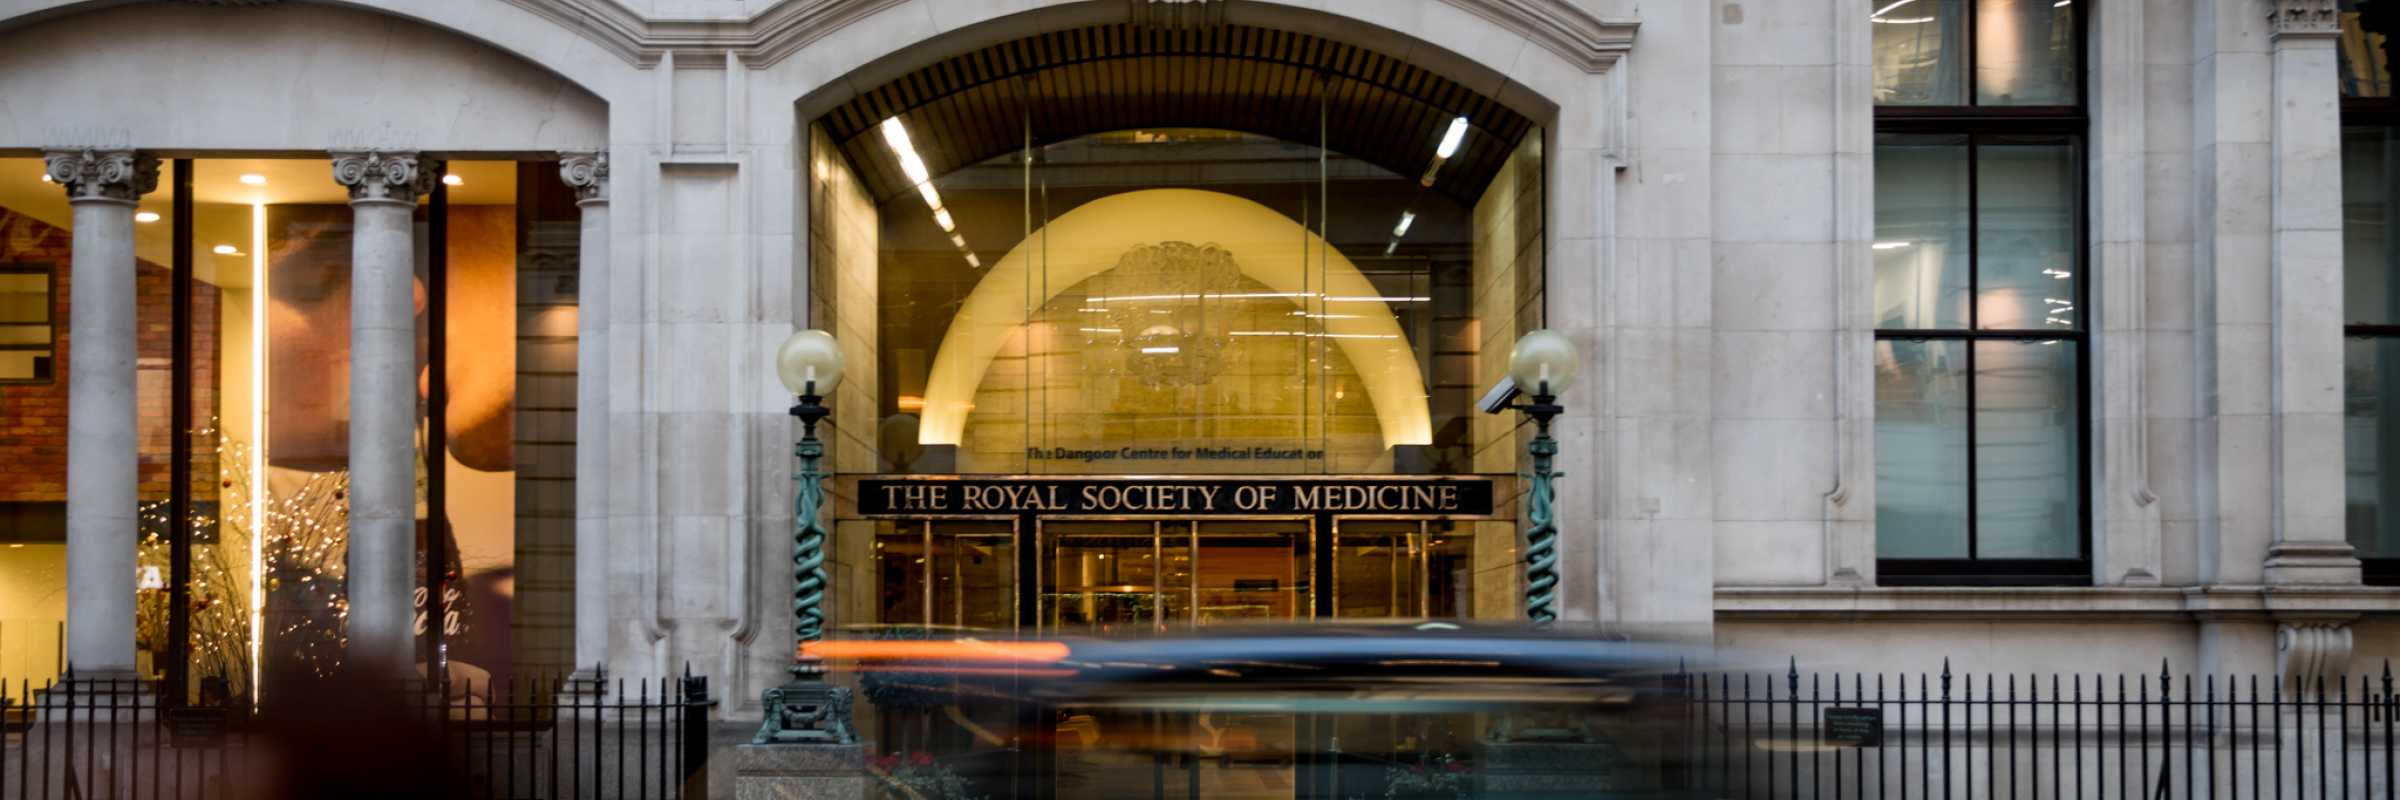 Outside the Royal Society of Medicine